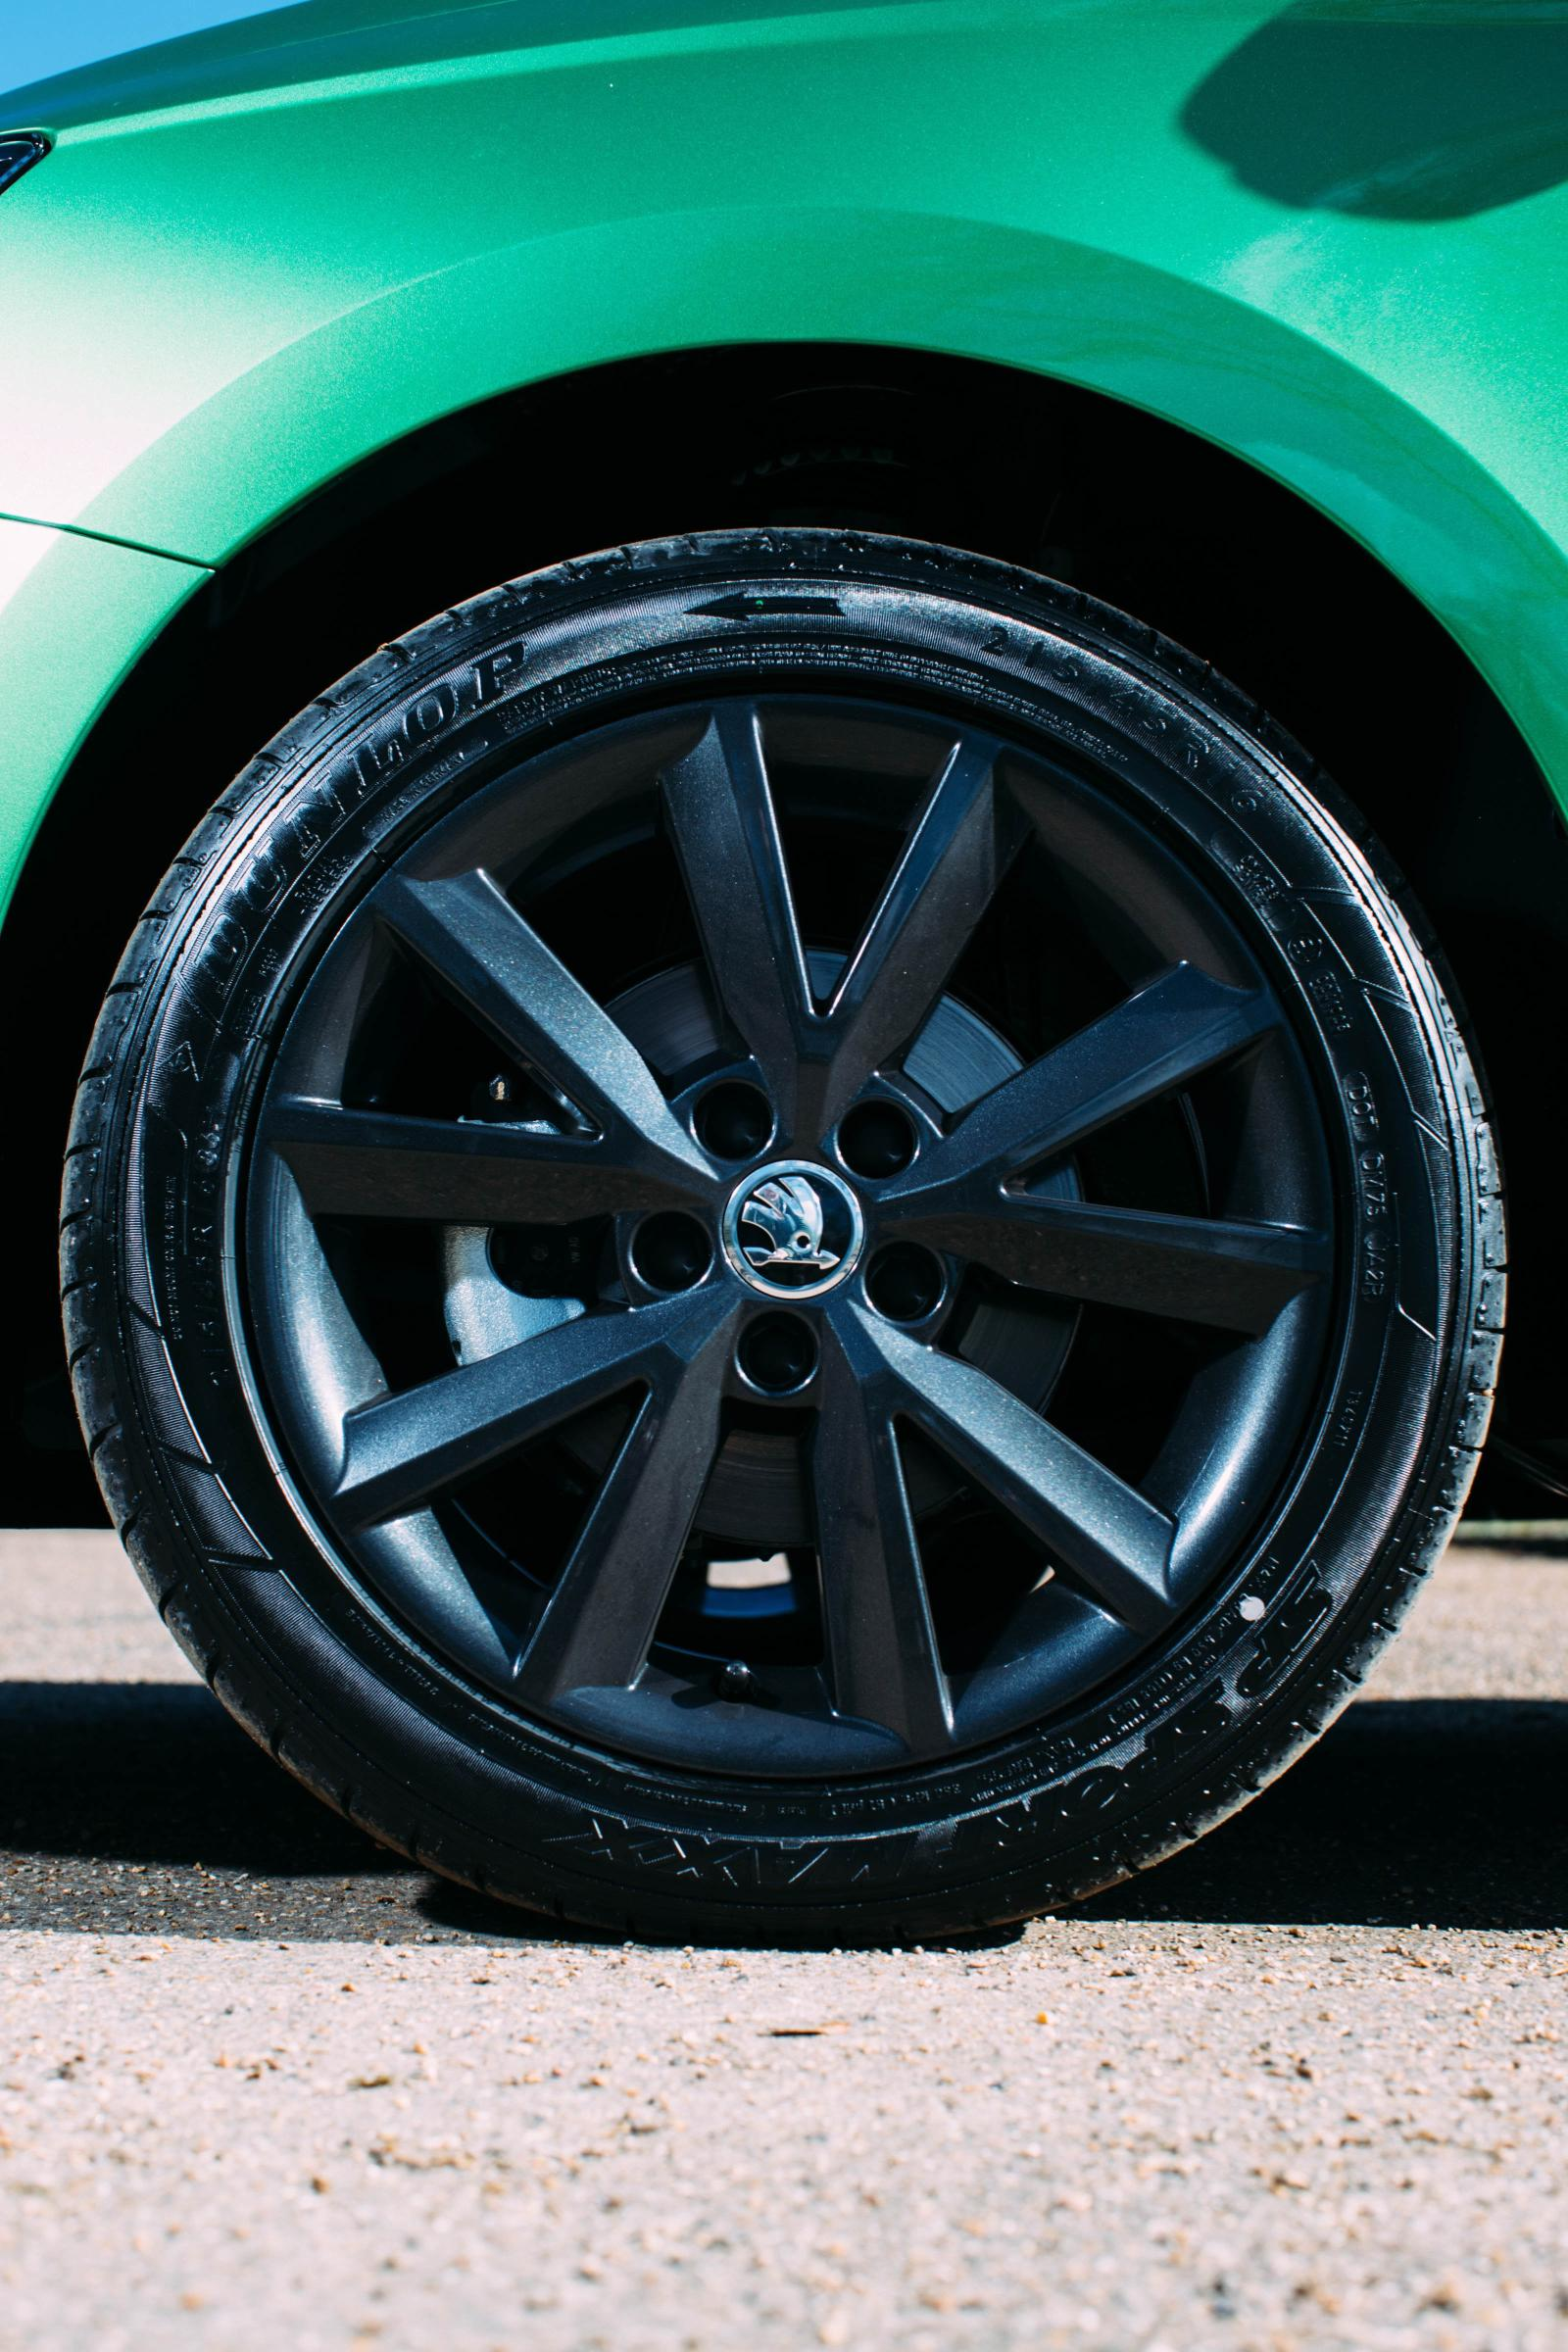 2016 Skoda Fabia Color Editions Arrive With Black Wheels